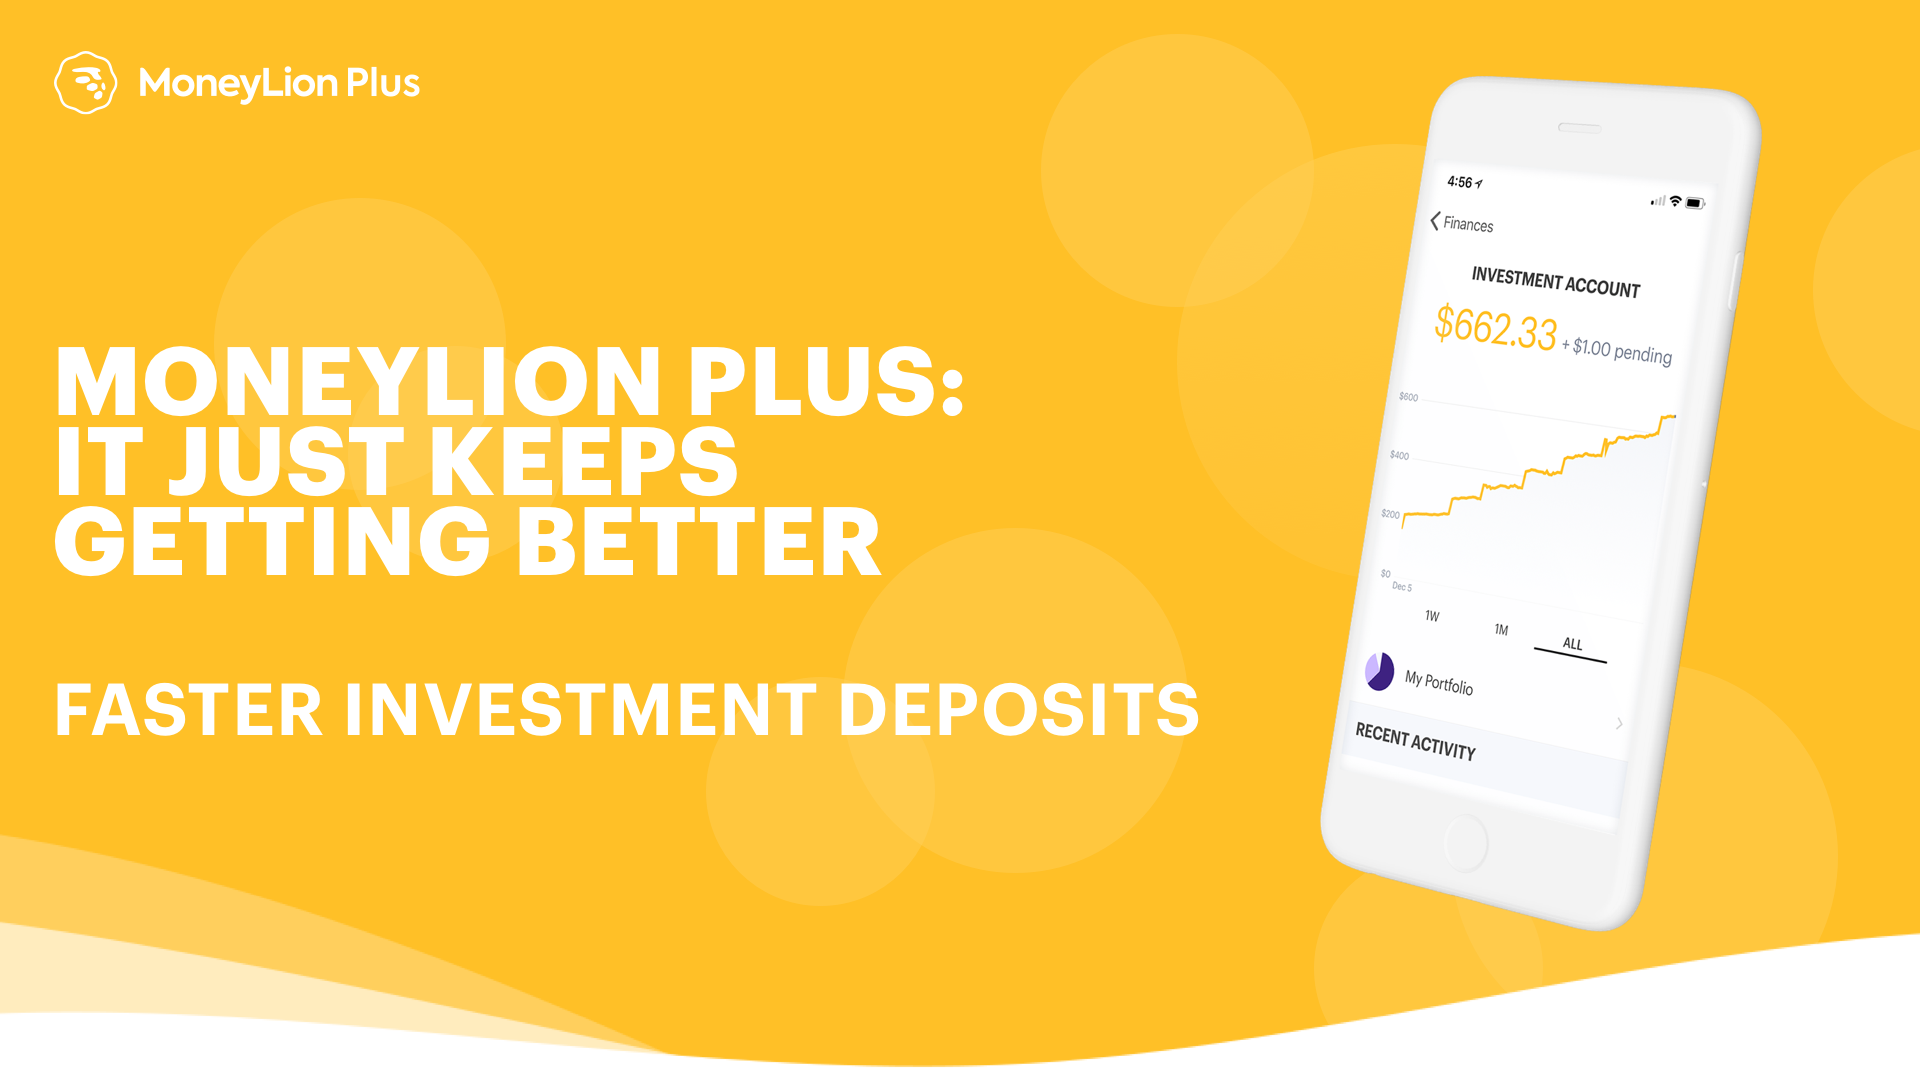 Facebook ML 06182018 NEW FASTER INVESTMENT DEPOSITS